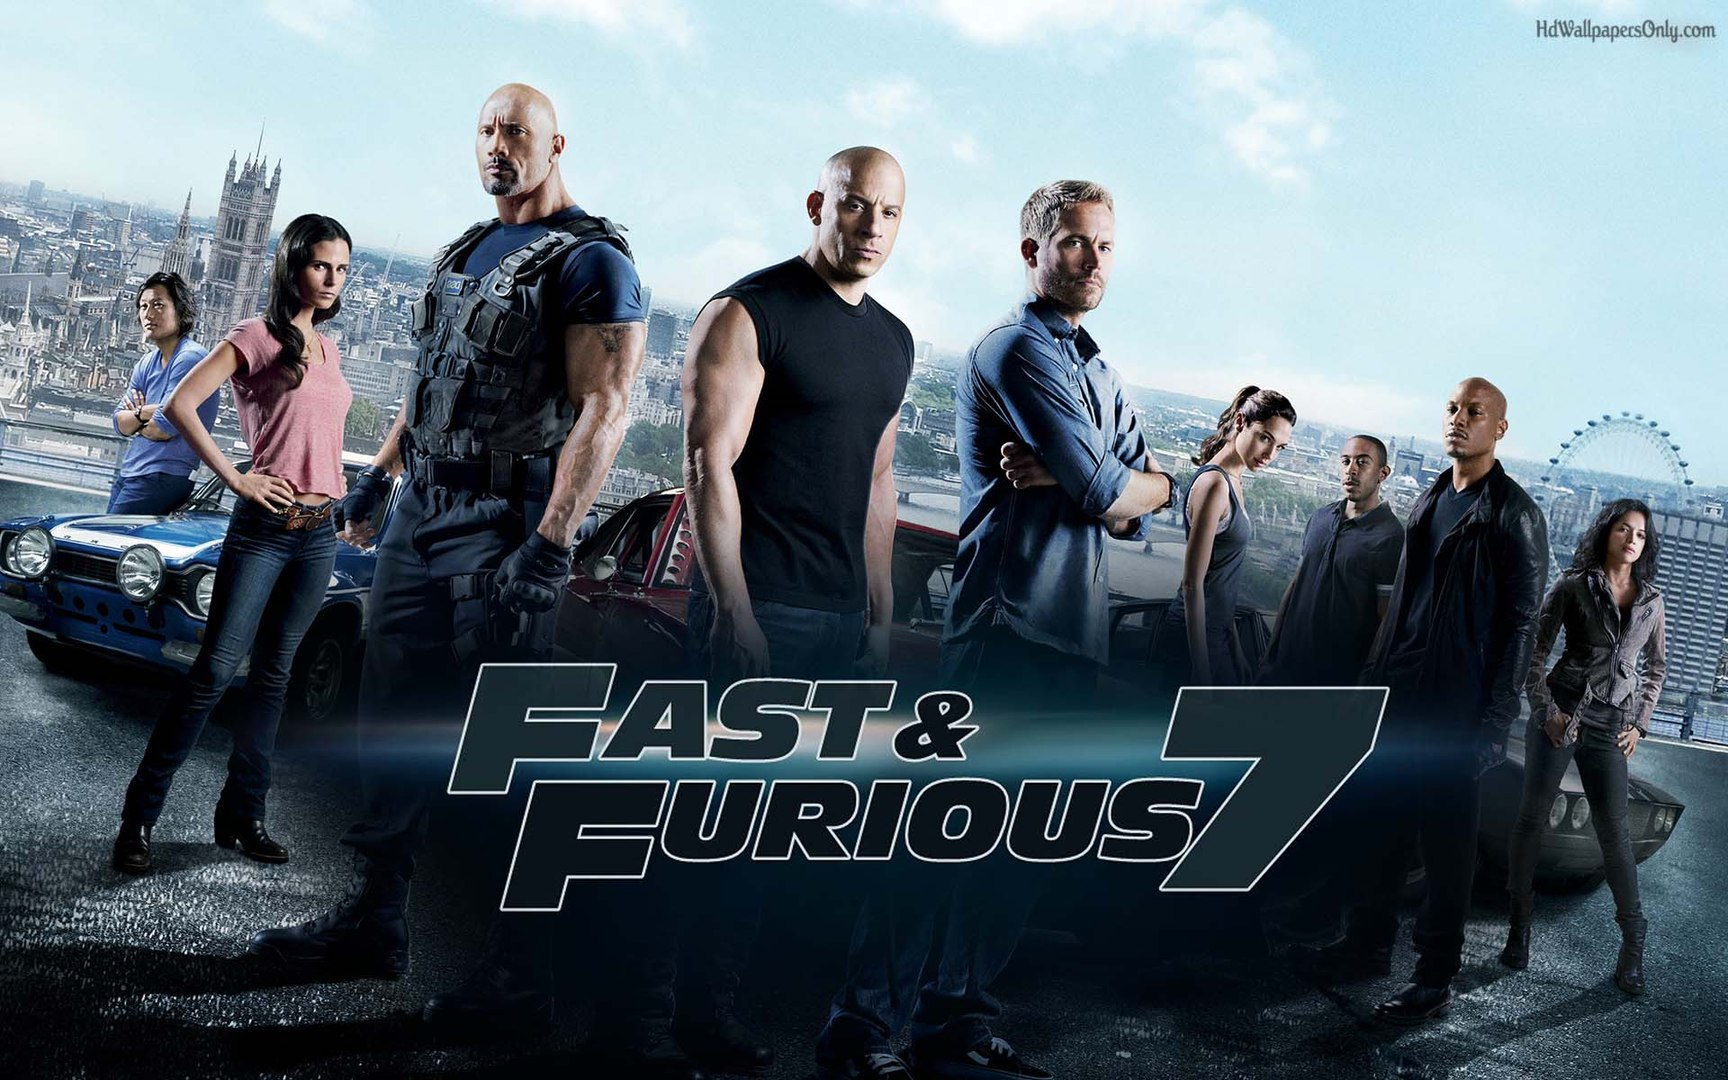 fast and furious 7 watch online free full movie hd